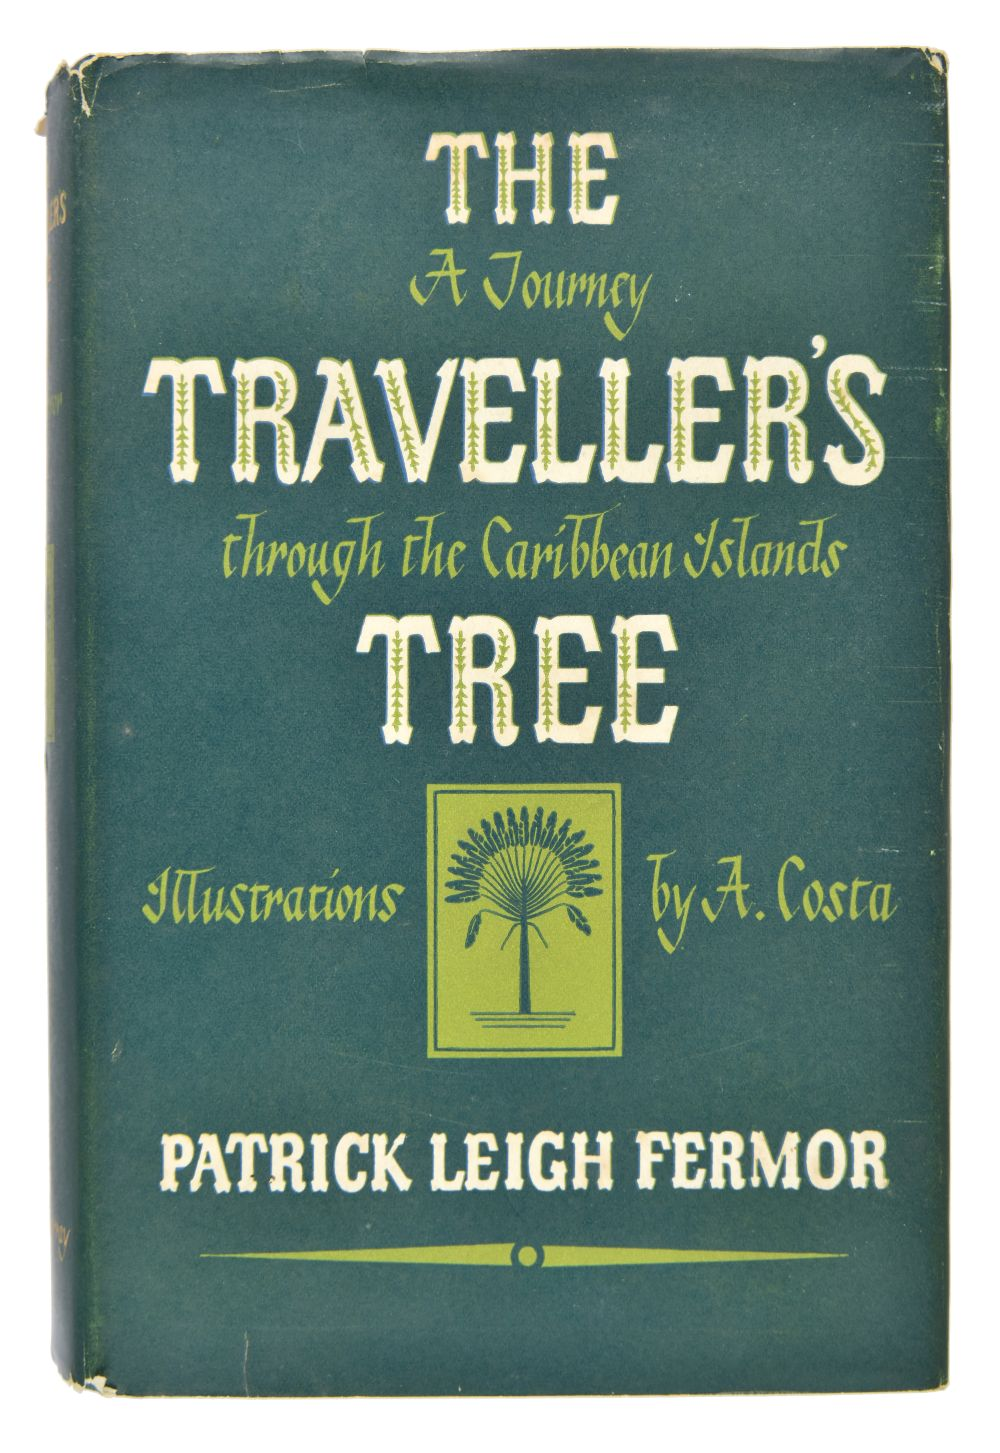 Fermor (Patrick Leigh). The Traveller's Tree, 1st edition, 1950